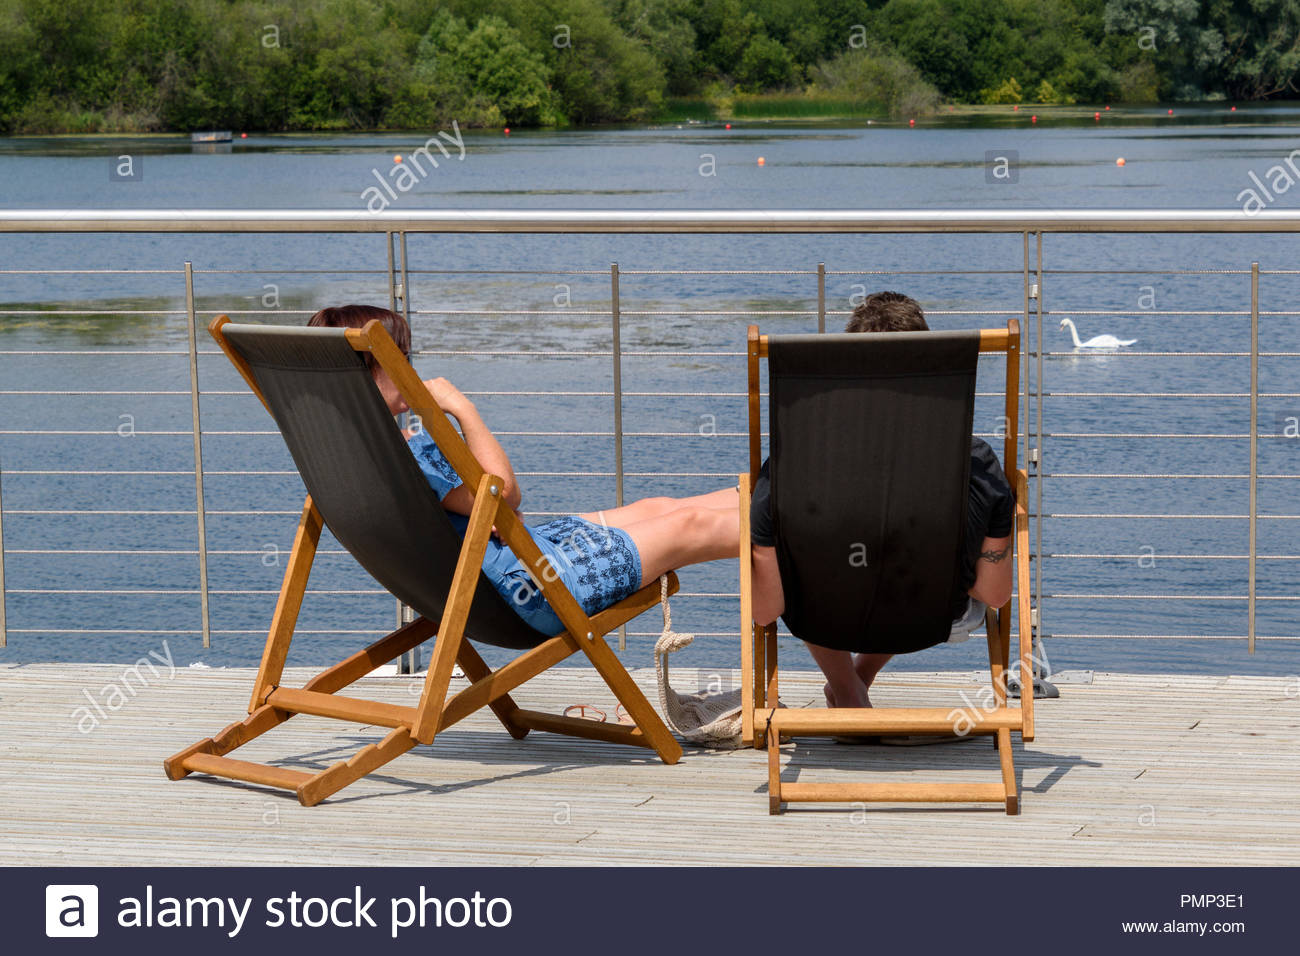 A young couple captured from behind sitting in deckchairs overlooking Rushden Lake, Northamptonshire, England, UK - Stock Image